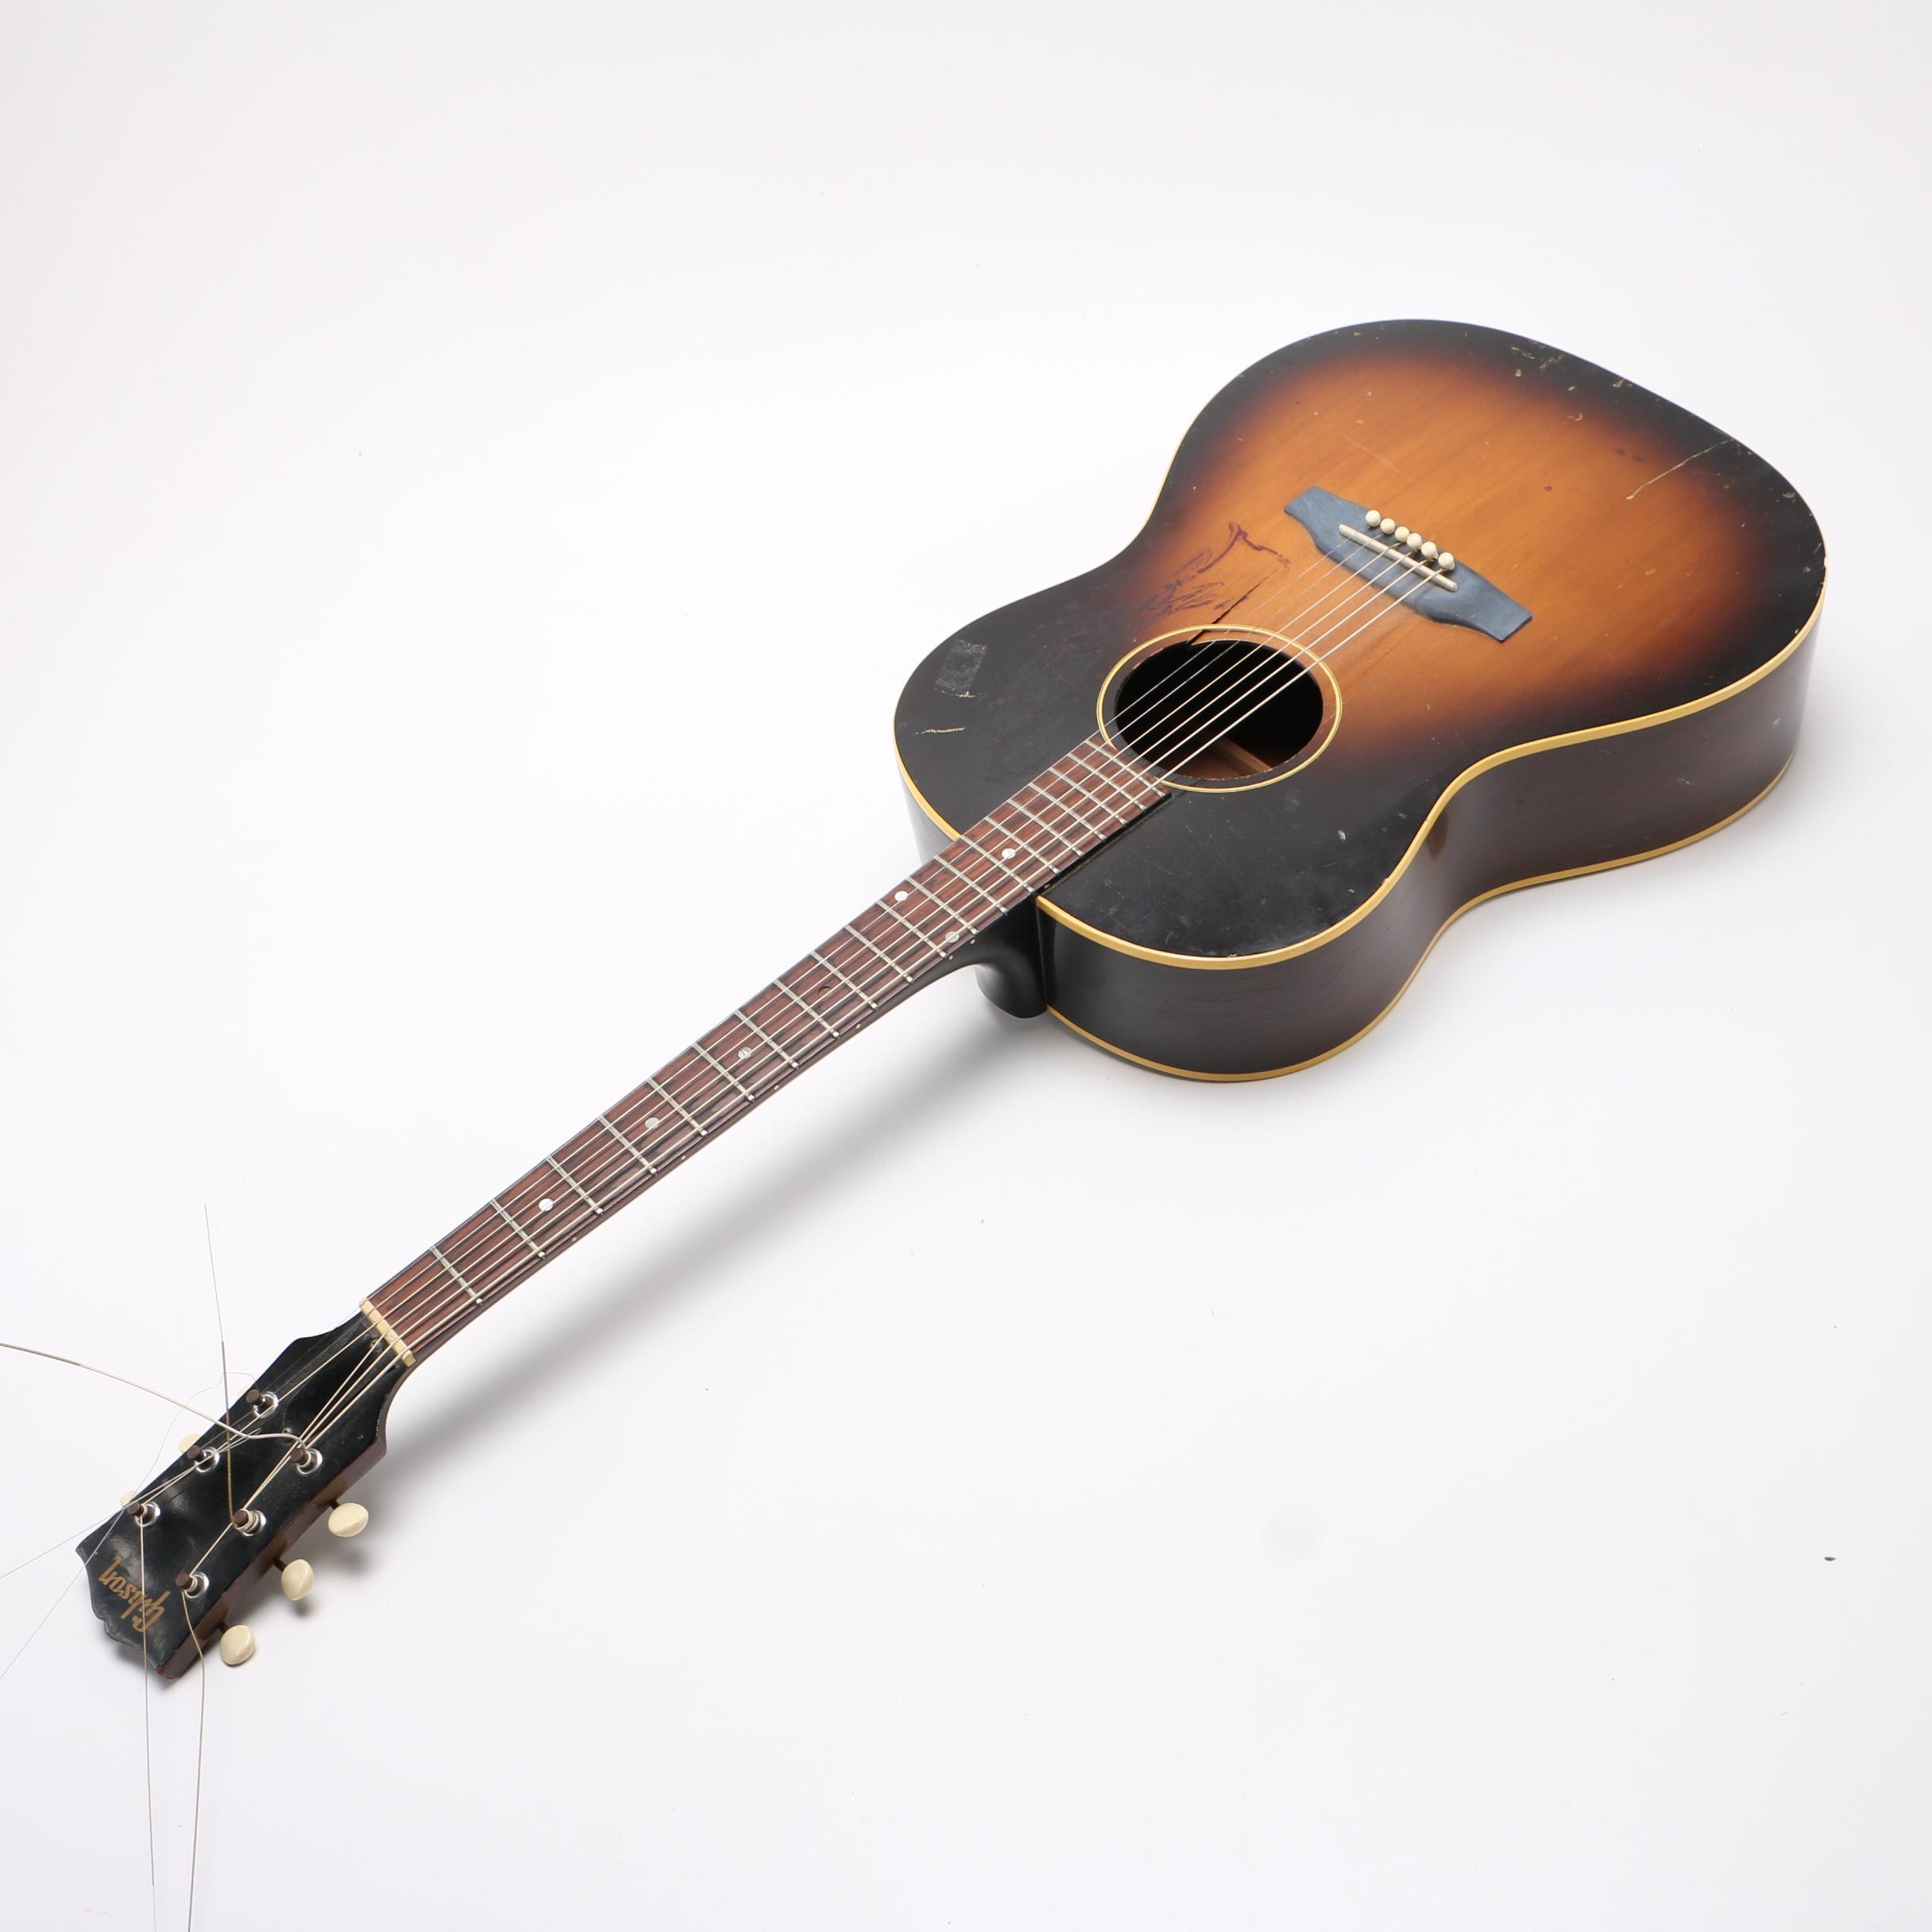 Vintage Gibson Acoustic Guitar